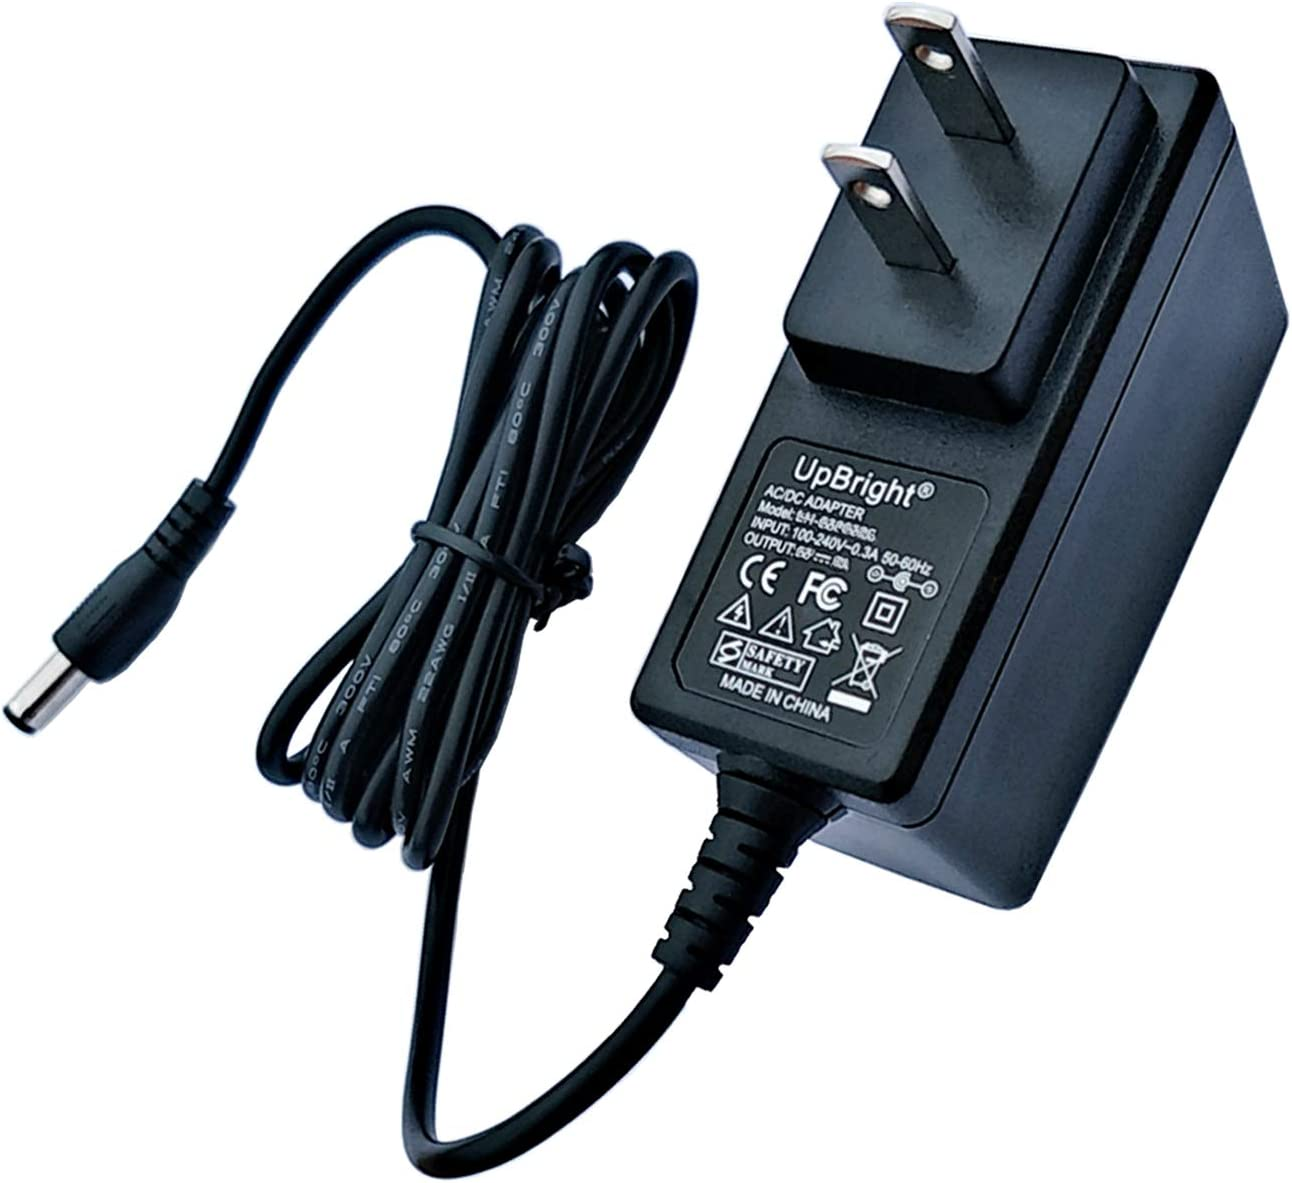 UpBright 10V AC/DC Adapter Compatible with Procter Gamble Proctor P&G FS4000 7.2V Battery Vacuum Cleaner Swiffer Sweeper Vac 1-FS4000-000 Emerson DCH2-100US-1301 SIL SSA-100015US 10VDC 150mA Charger